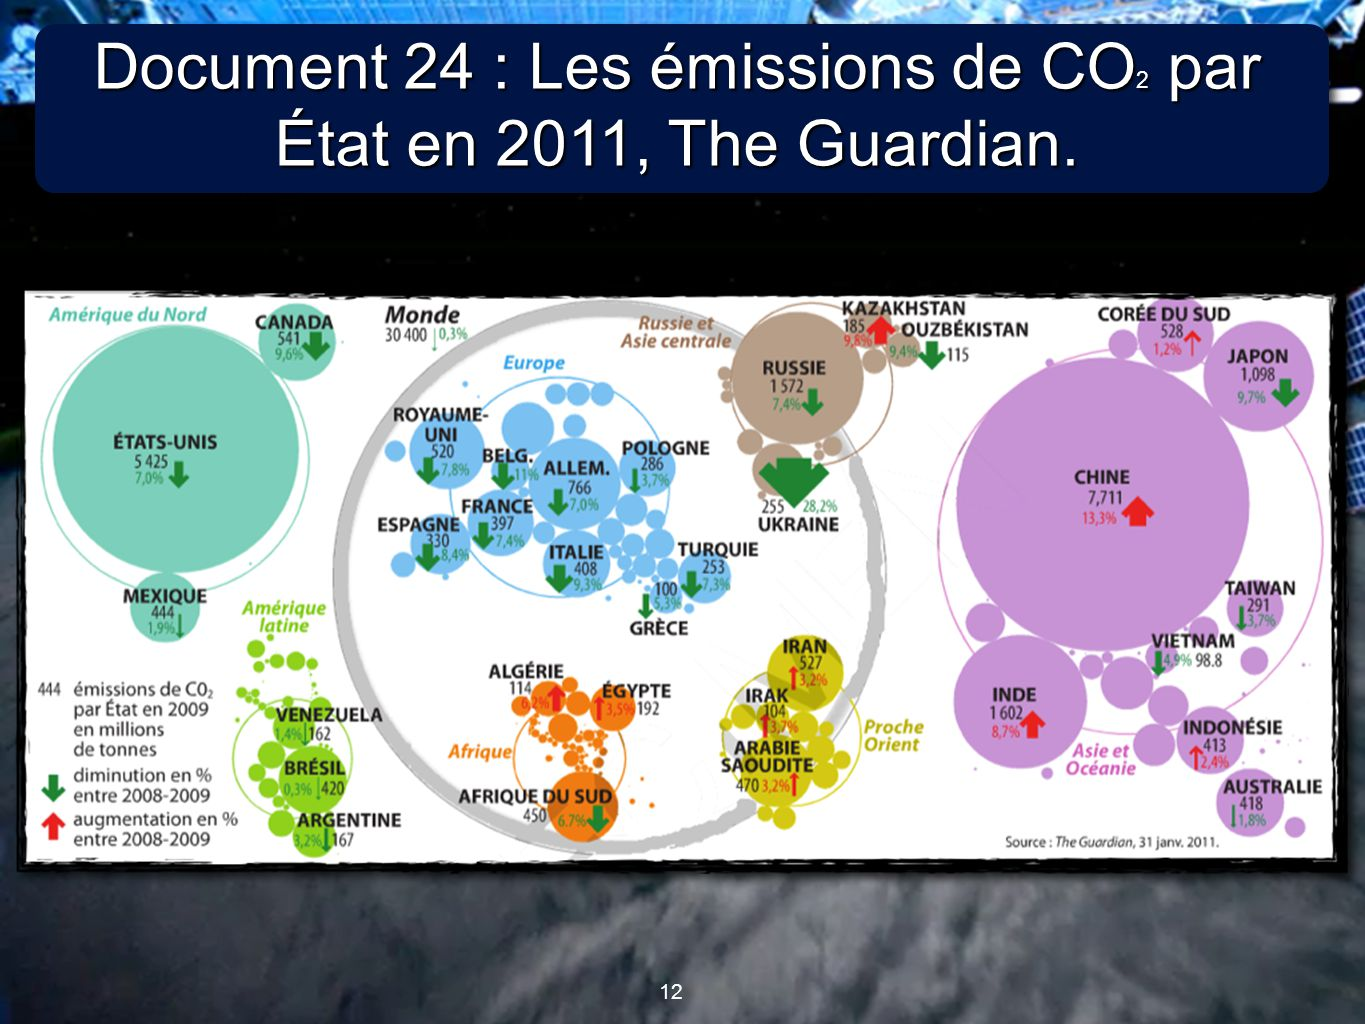 Document 24 : Les émissions de CO2 par État en 2011, The Guardian.